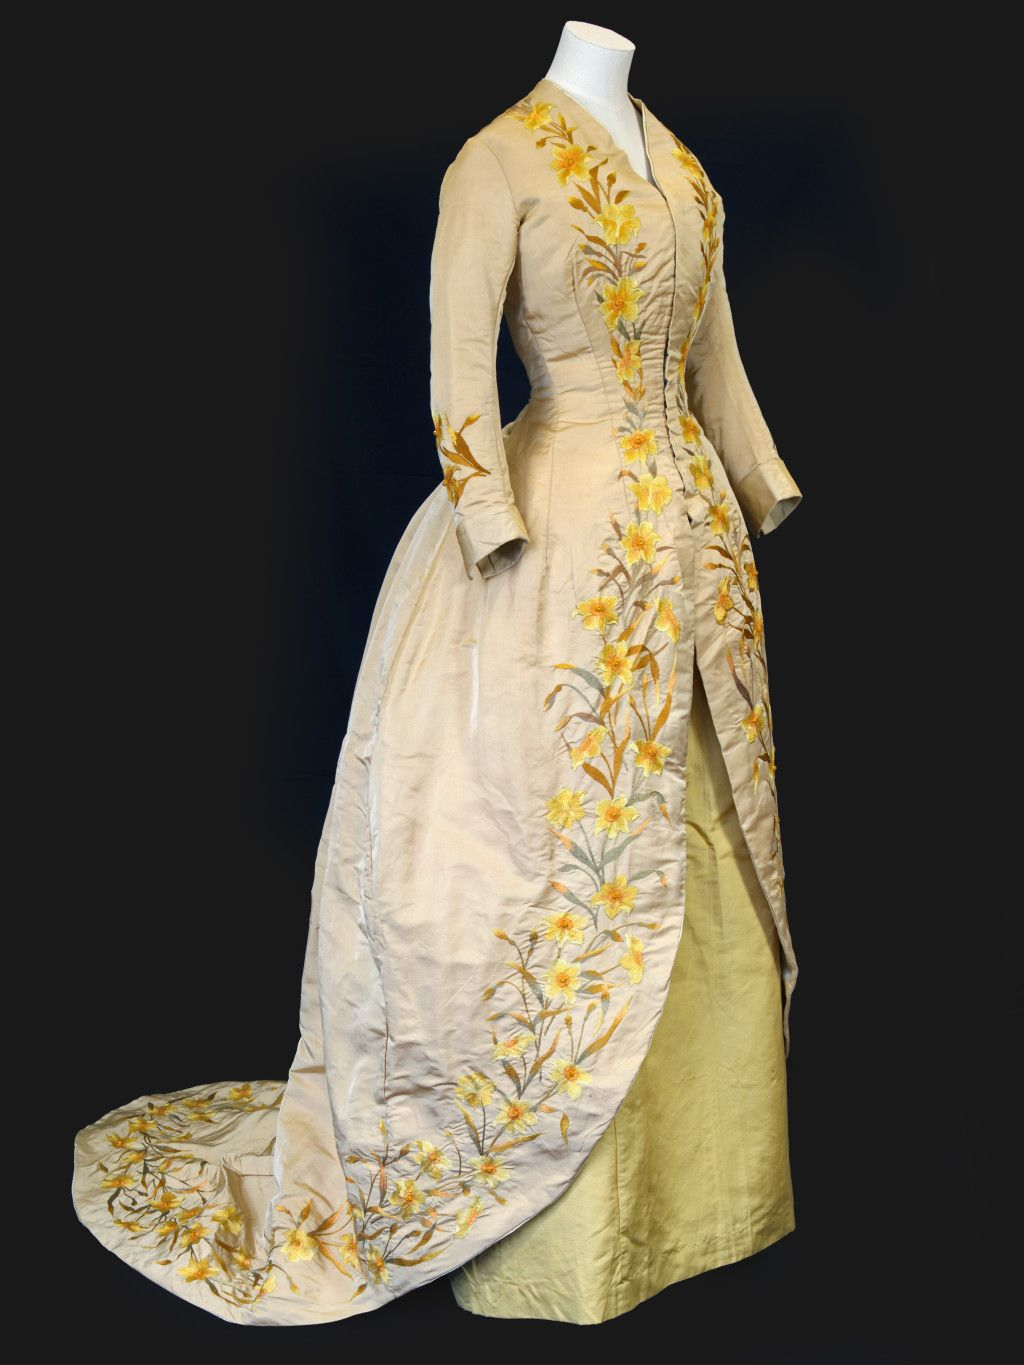 Daffodil dress and underskirt embroidered by henriette leonard c